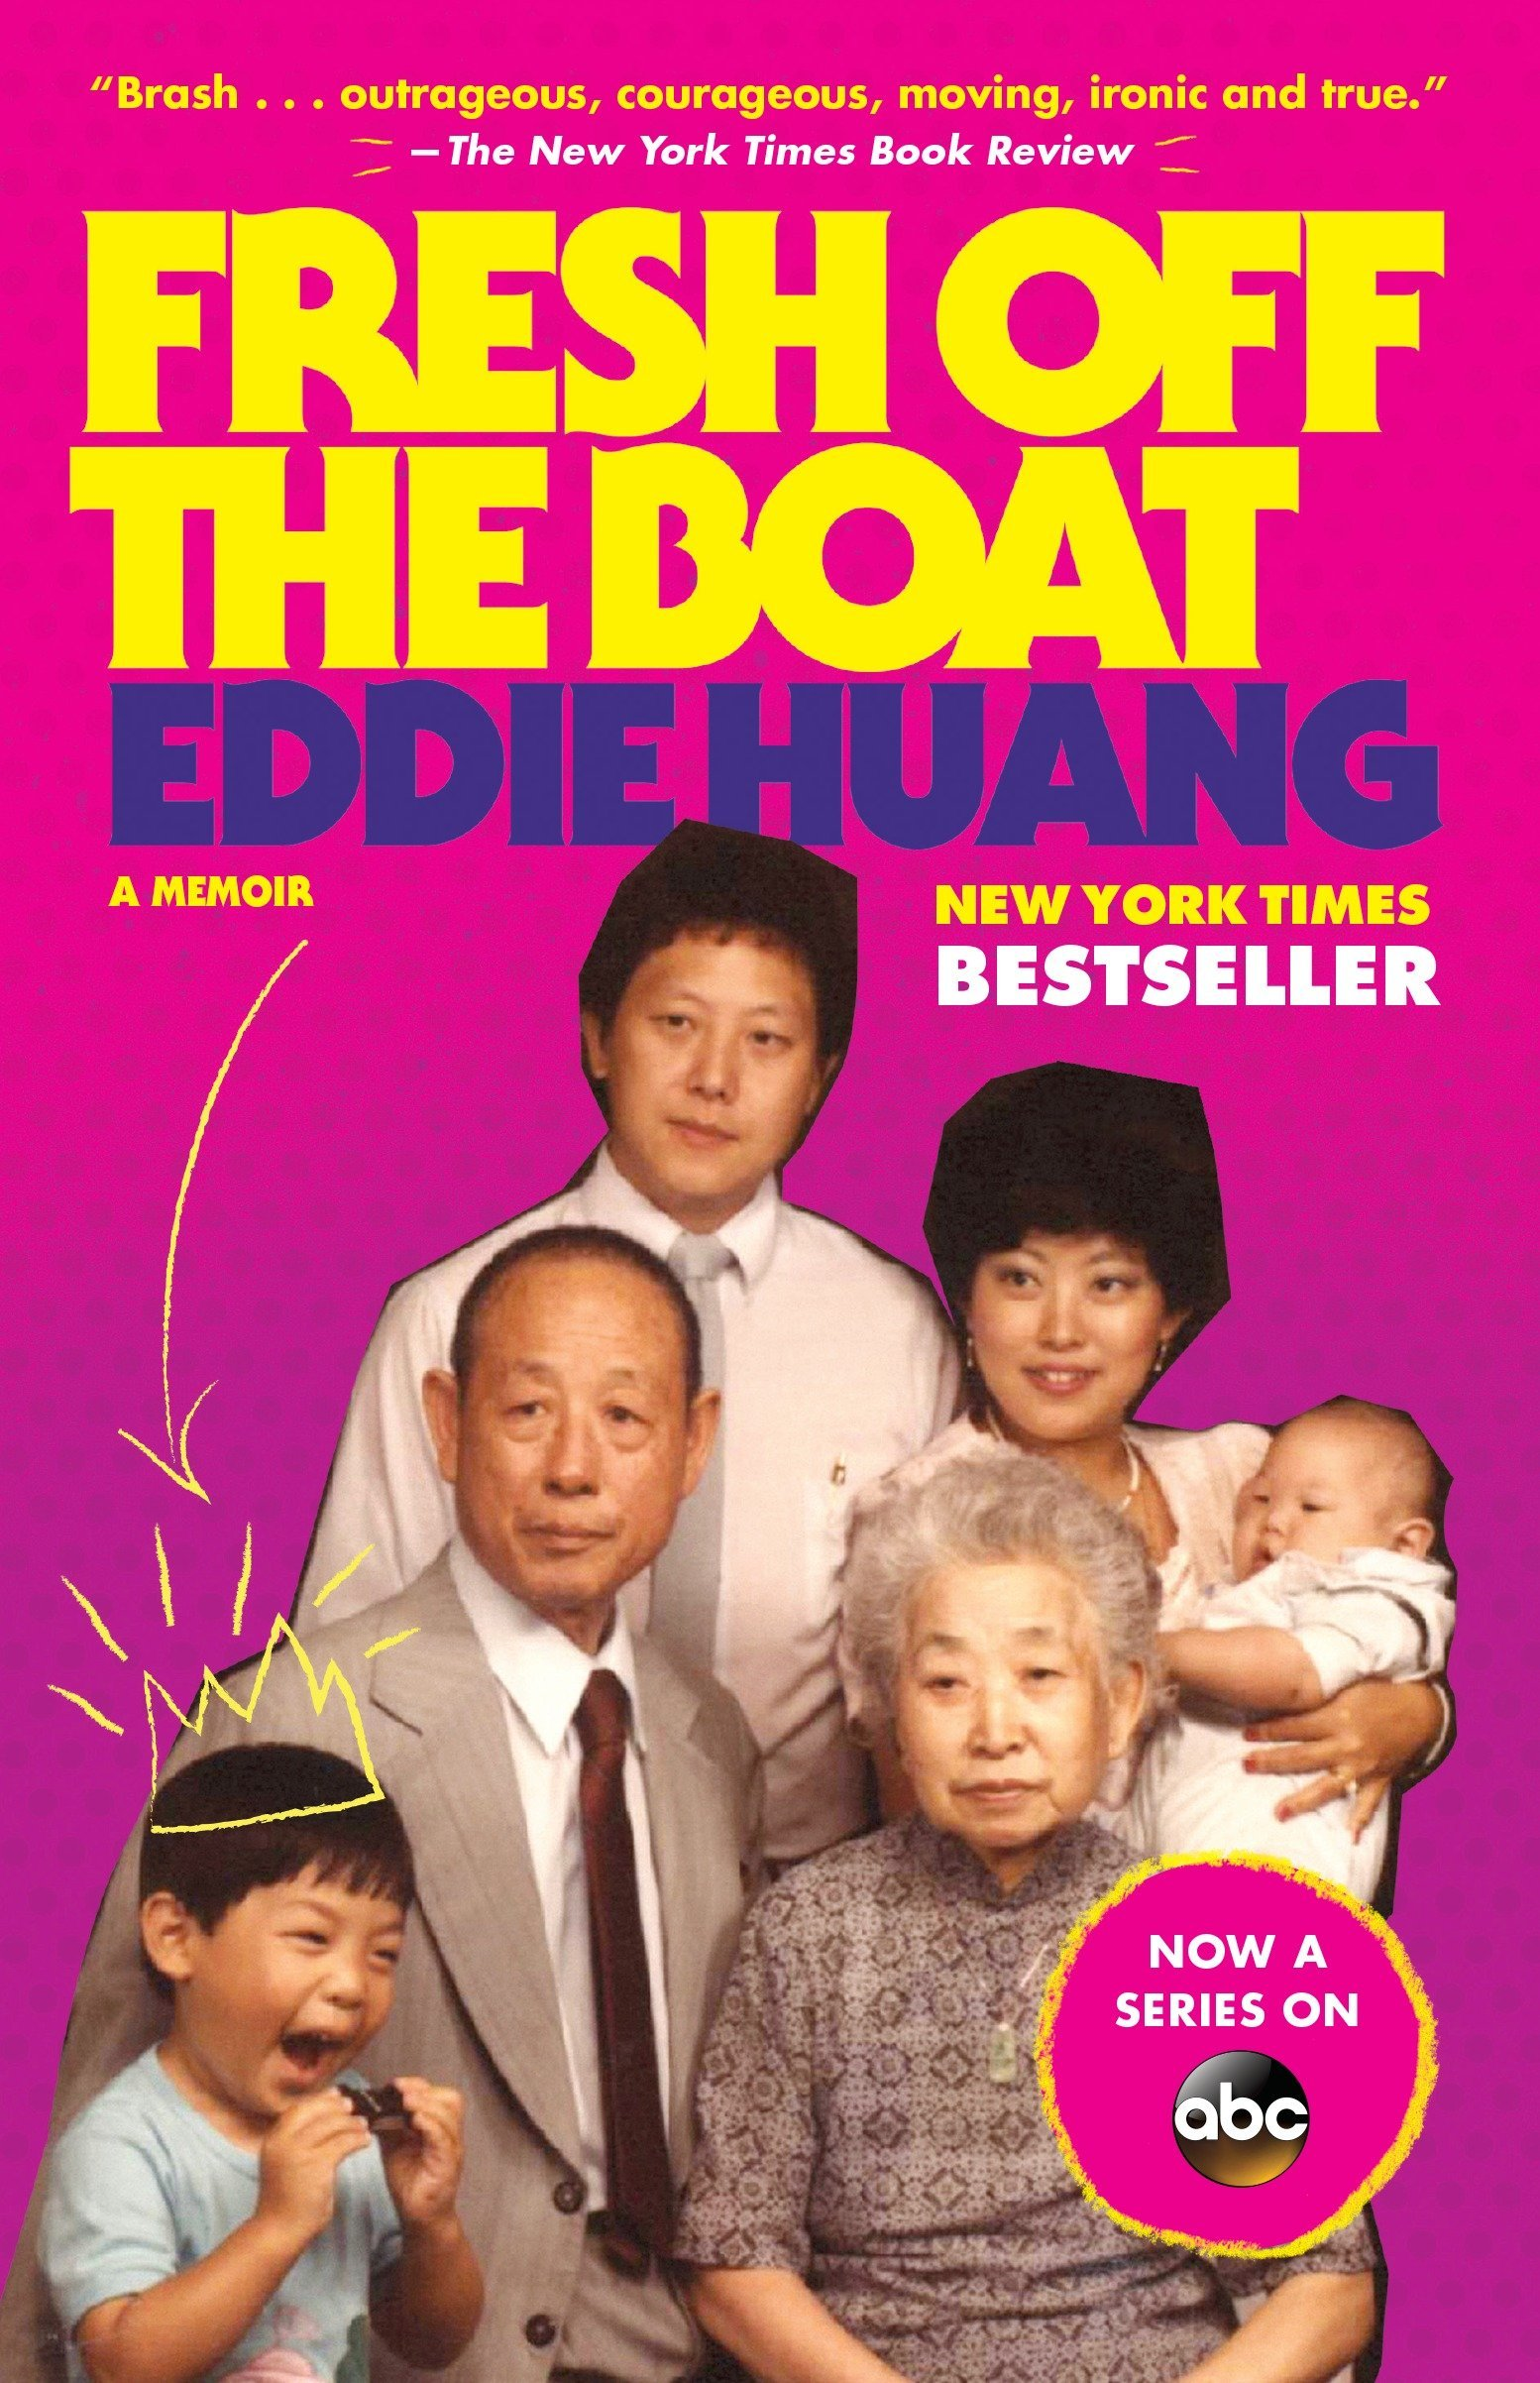 Image result for fresh off the boat eddie huang